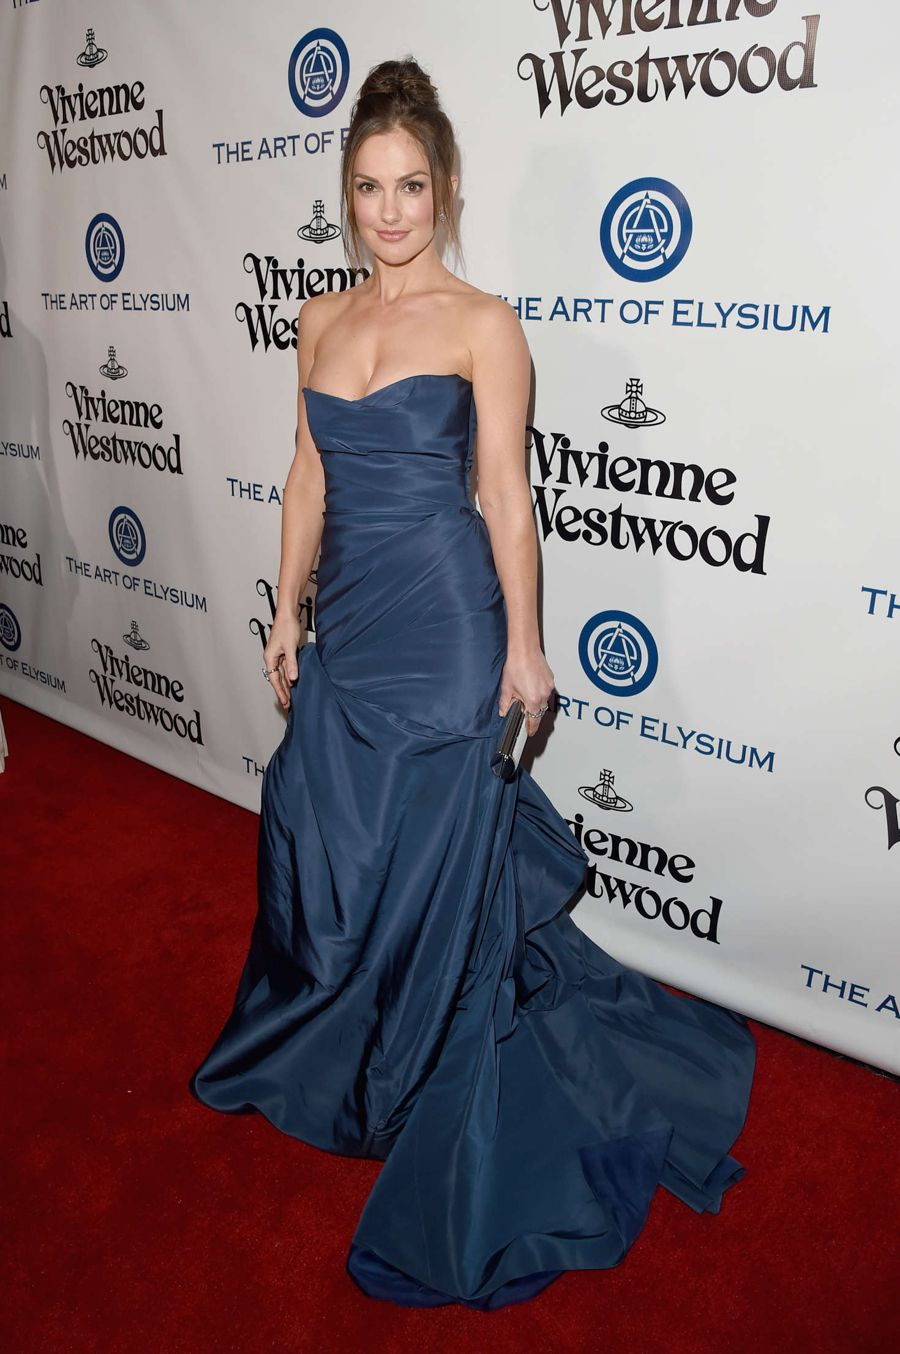 Minka Kelly - The Art of Elysium 2016 HEAVEN Gala